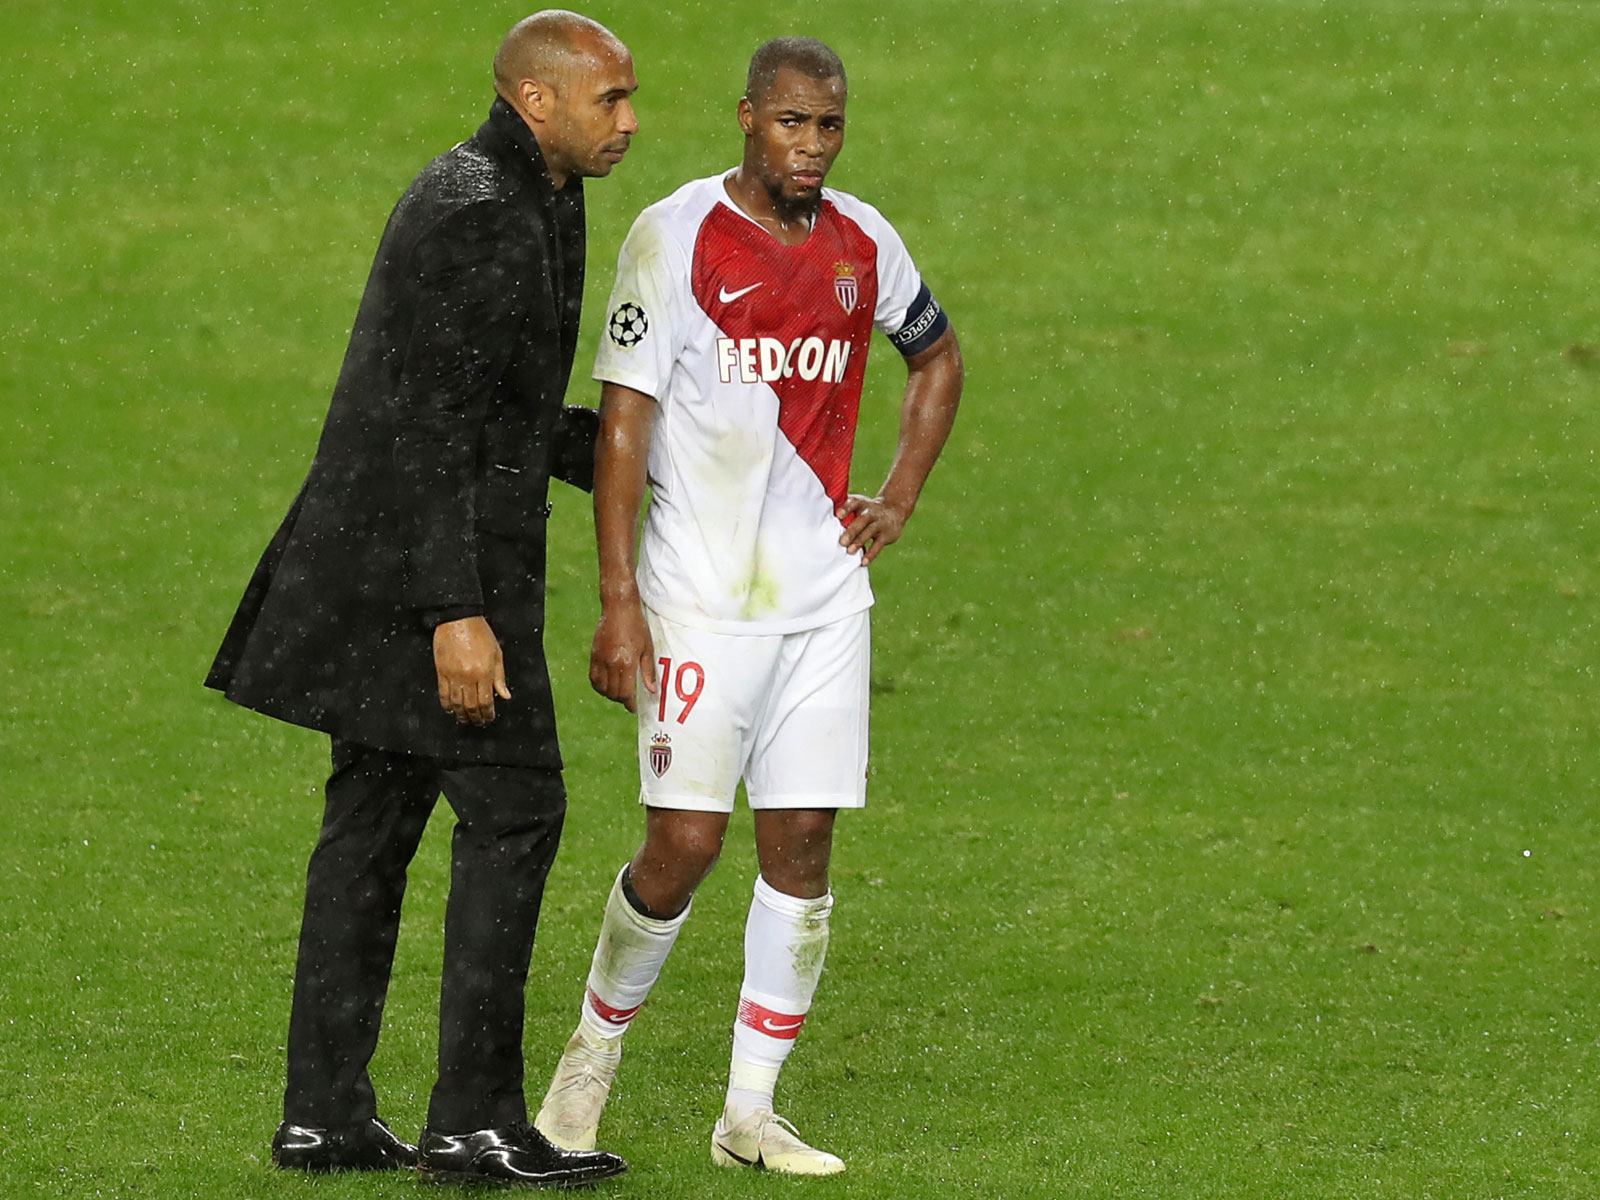 Thierry Henry and Monaco lose again in Champions League